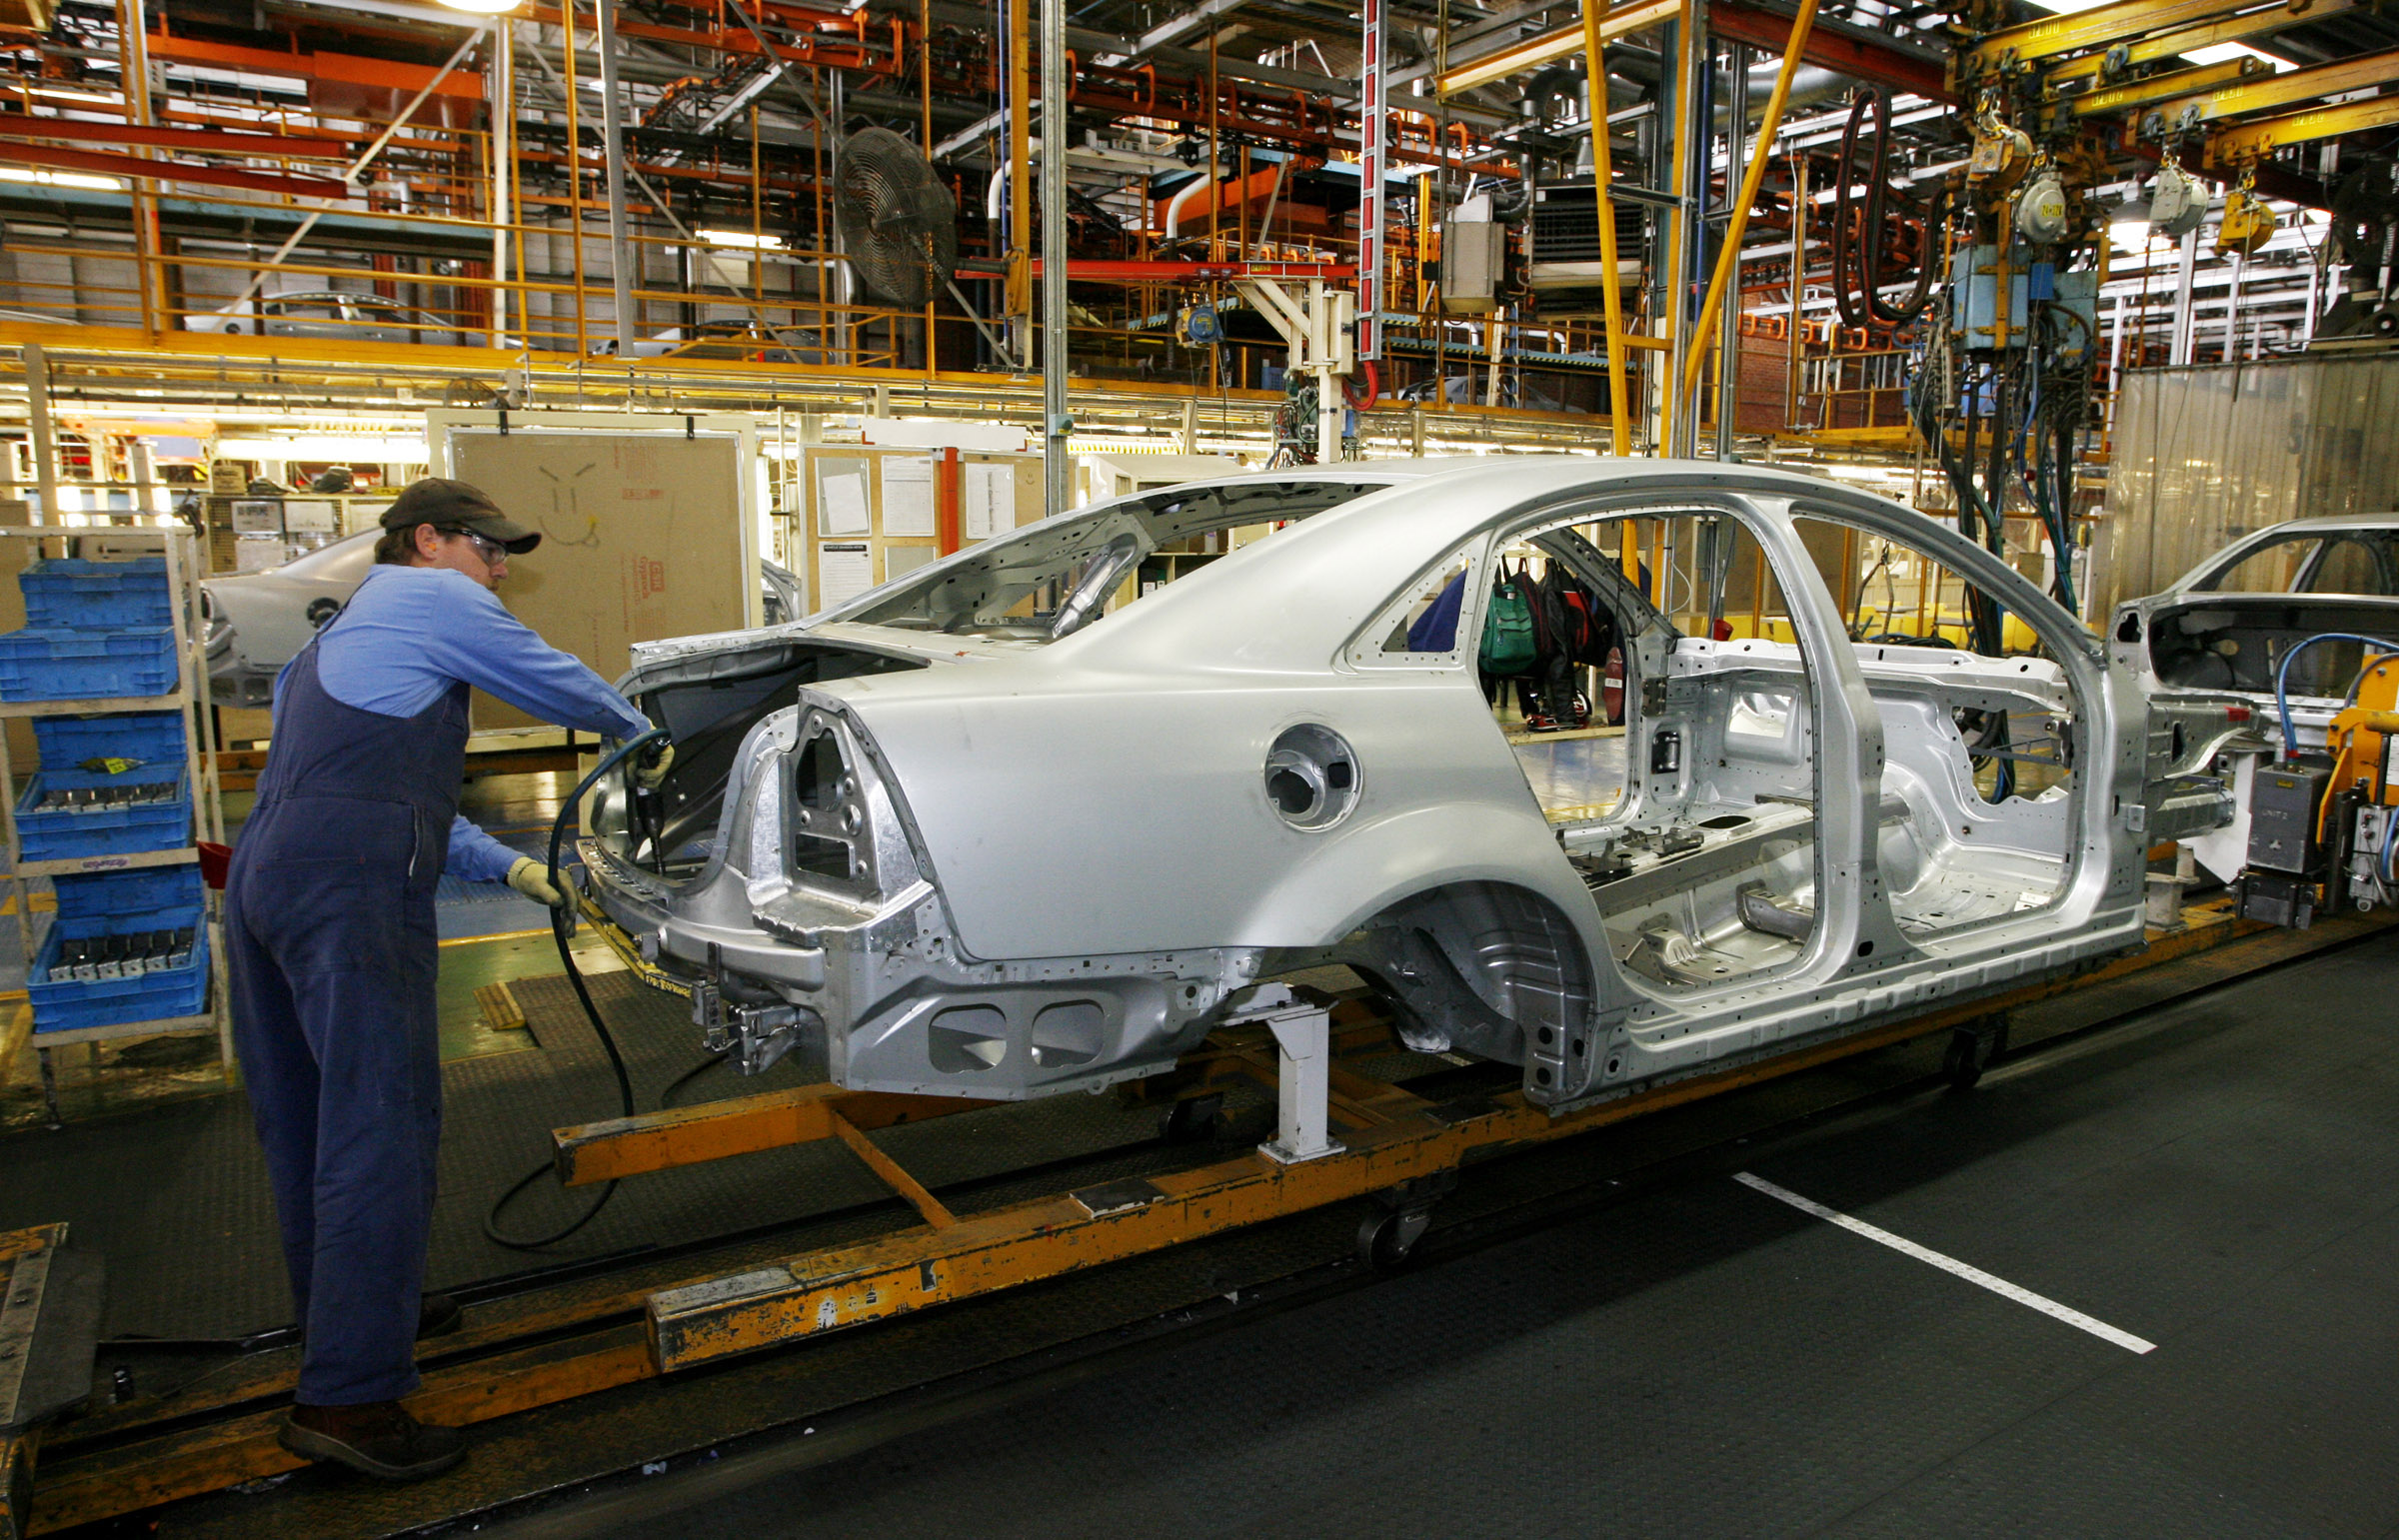 Automakers Win 178 Million In Australia Aid To Support Manufacturing Jobs